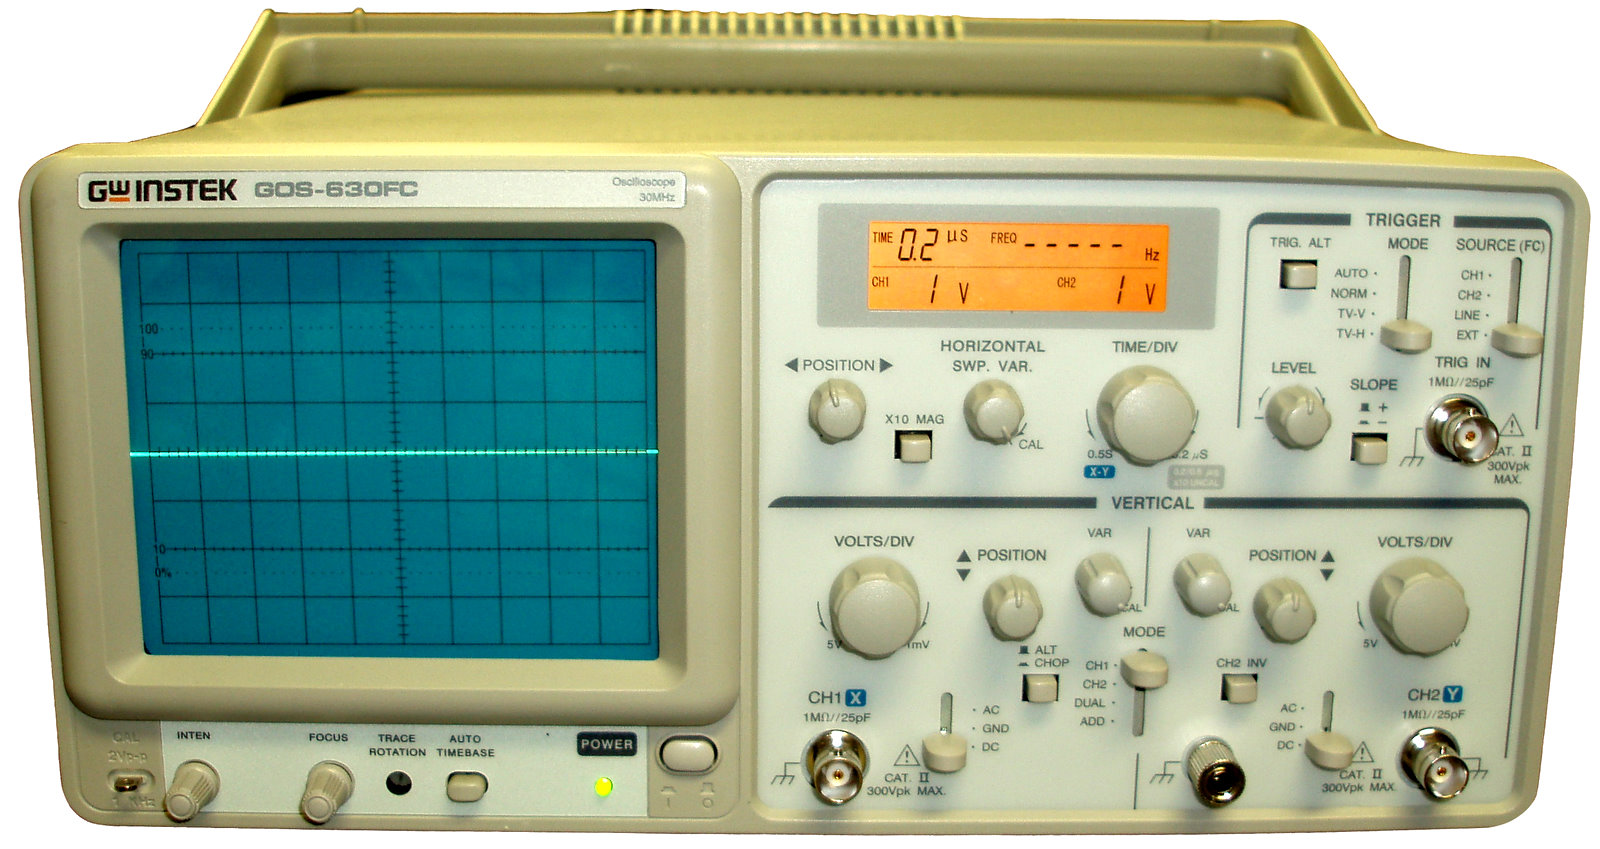 Gw Instek Gos-630Fc 30 Mhz, Oscilloscope With Frequency Counter